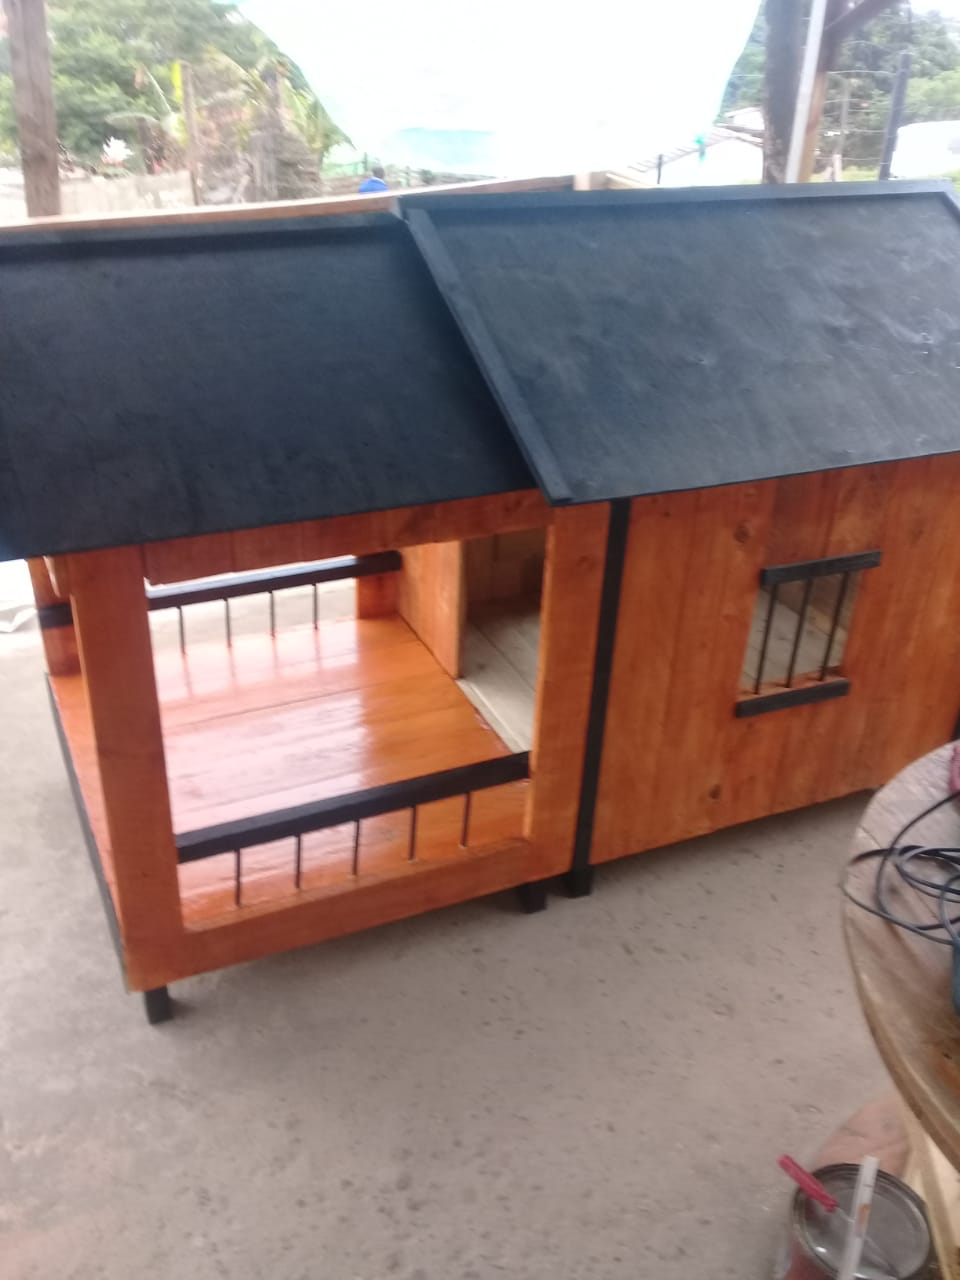 K9 kennels at low prices 073 379 6234